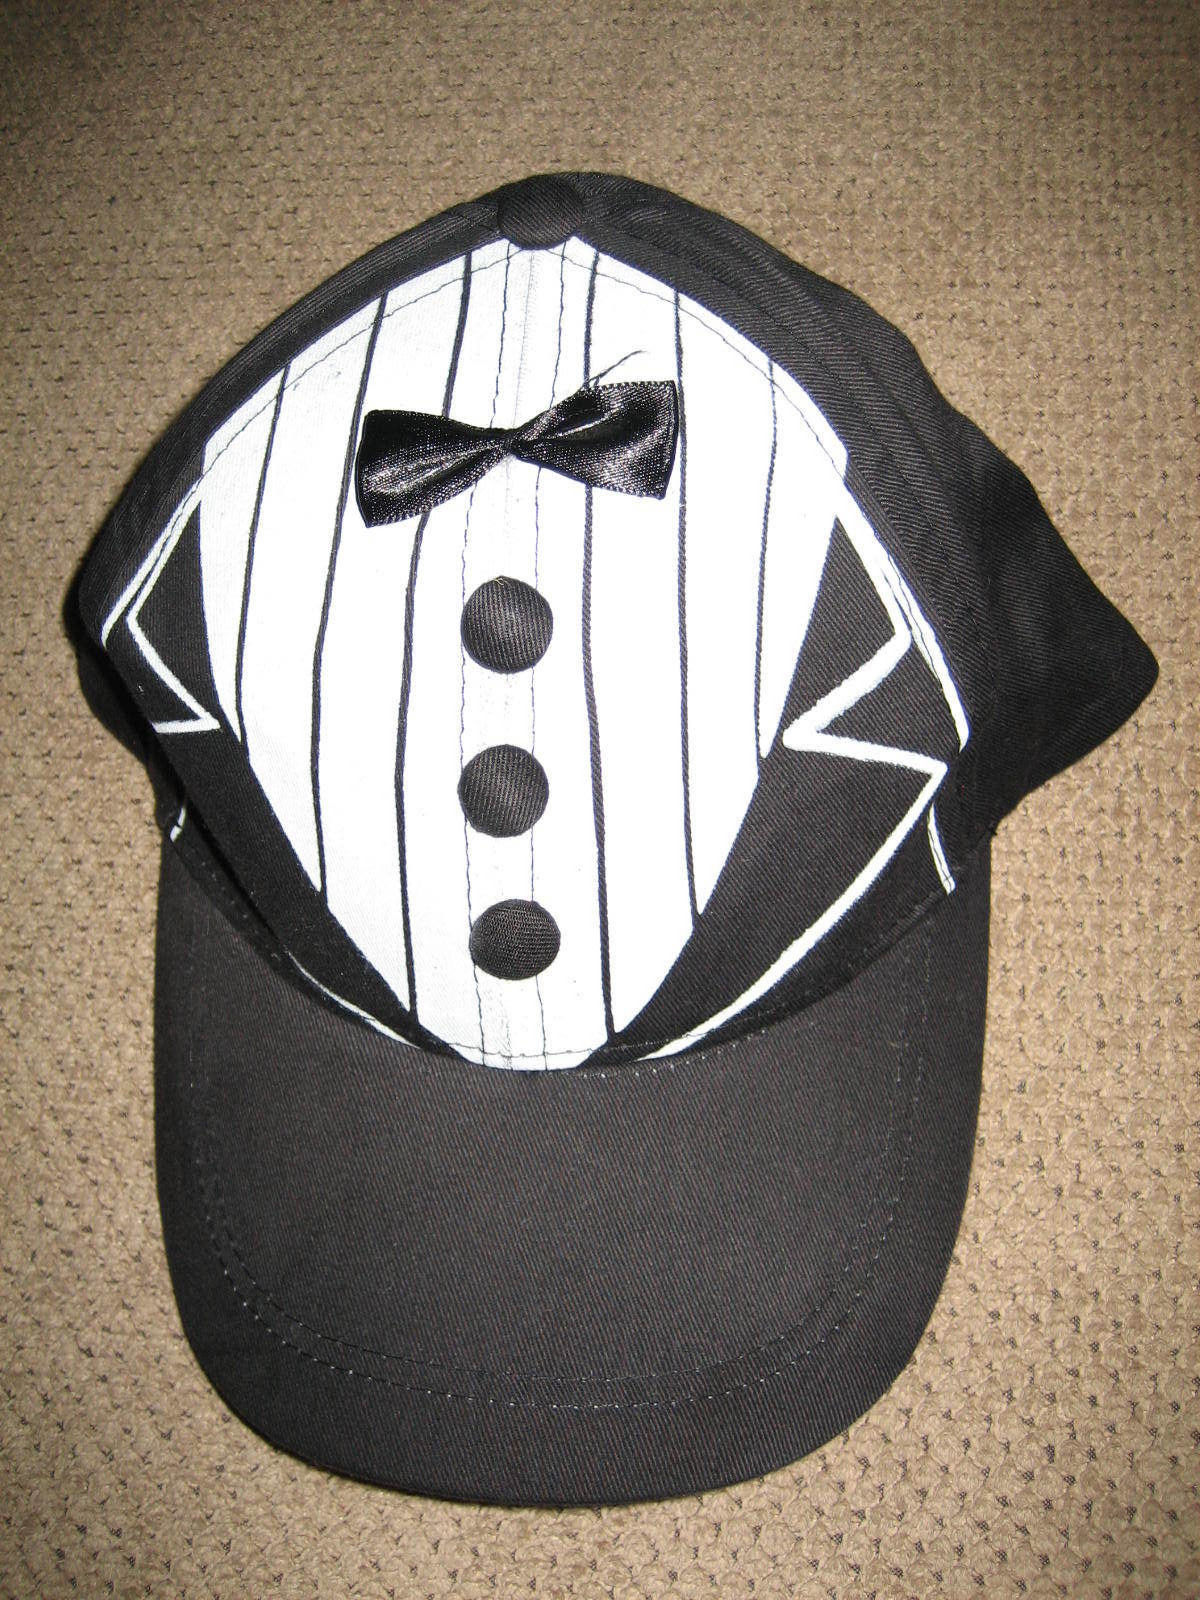 Primary image for NEW BLACK TUX CAP WEDDING PROMS FORMALS SIZE ADJUSTABLE